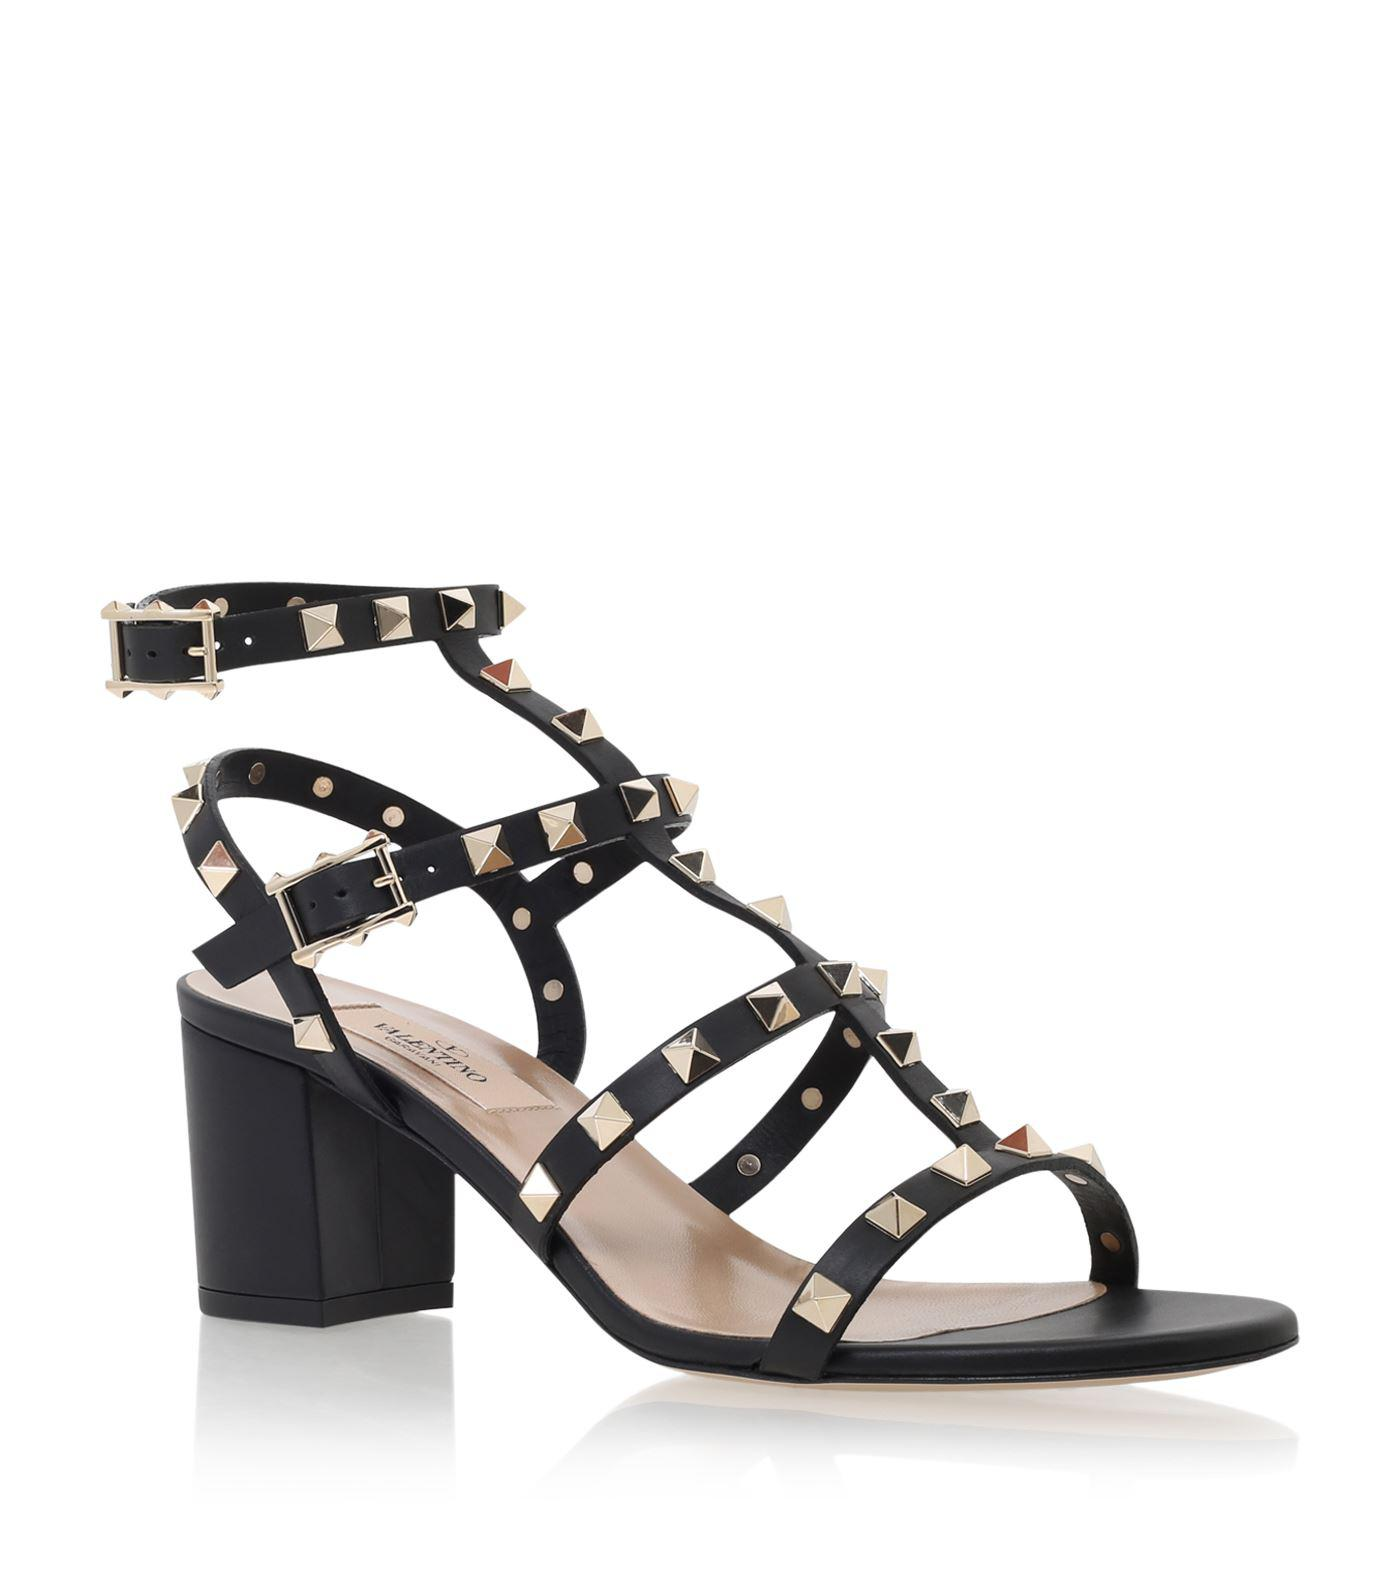 a910cd36297b Lyst - Valentino Rockstud Leather 60mm Sandals in Metallic - Save 61%